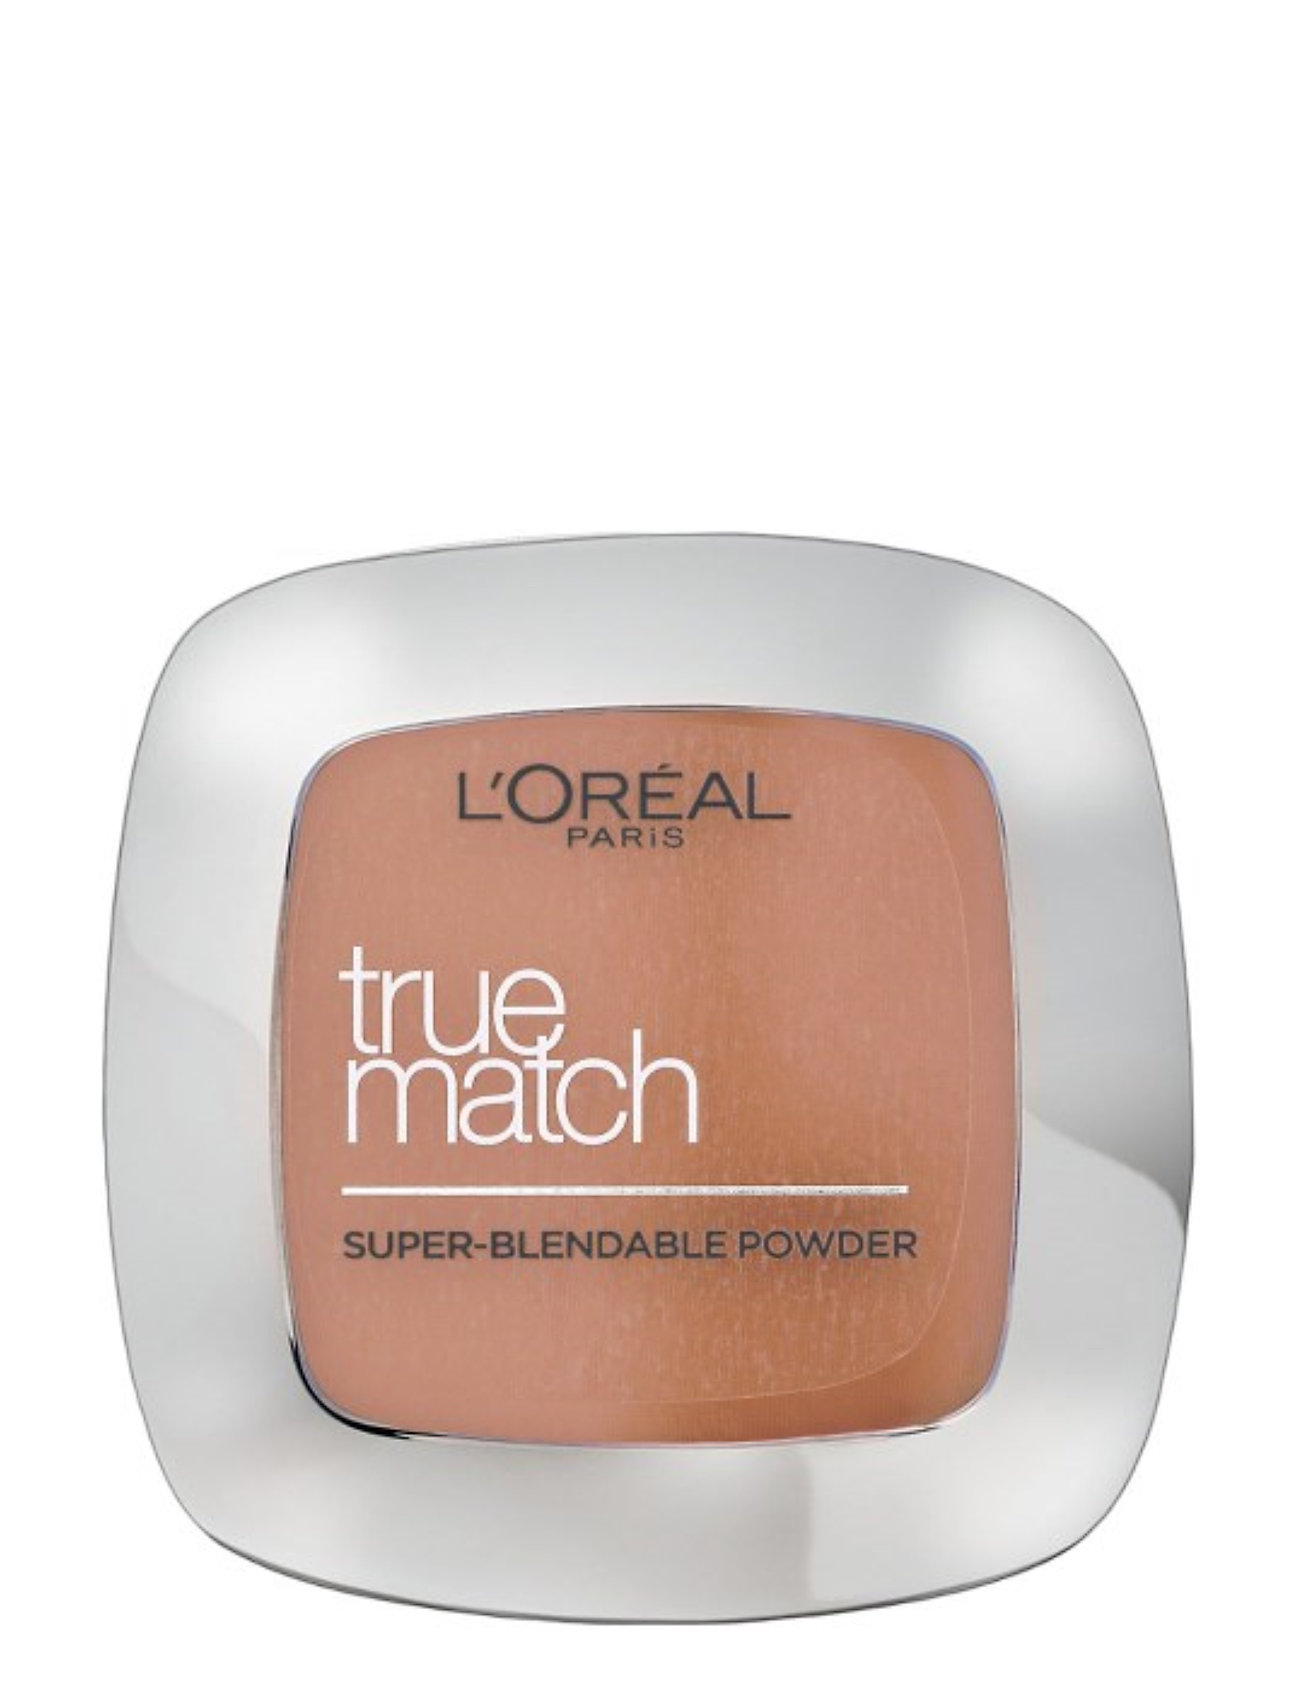 l'orã©al paris True match powder på boozt.com dk